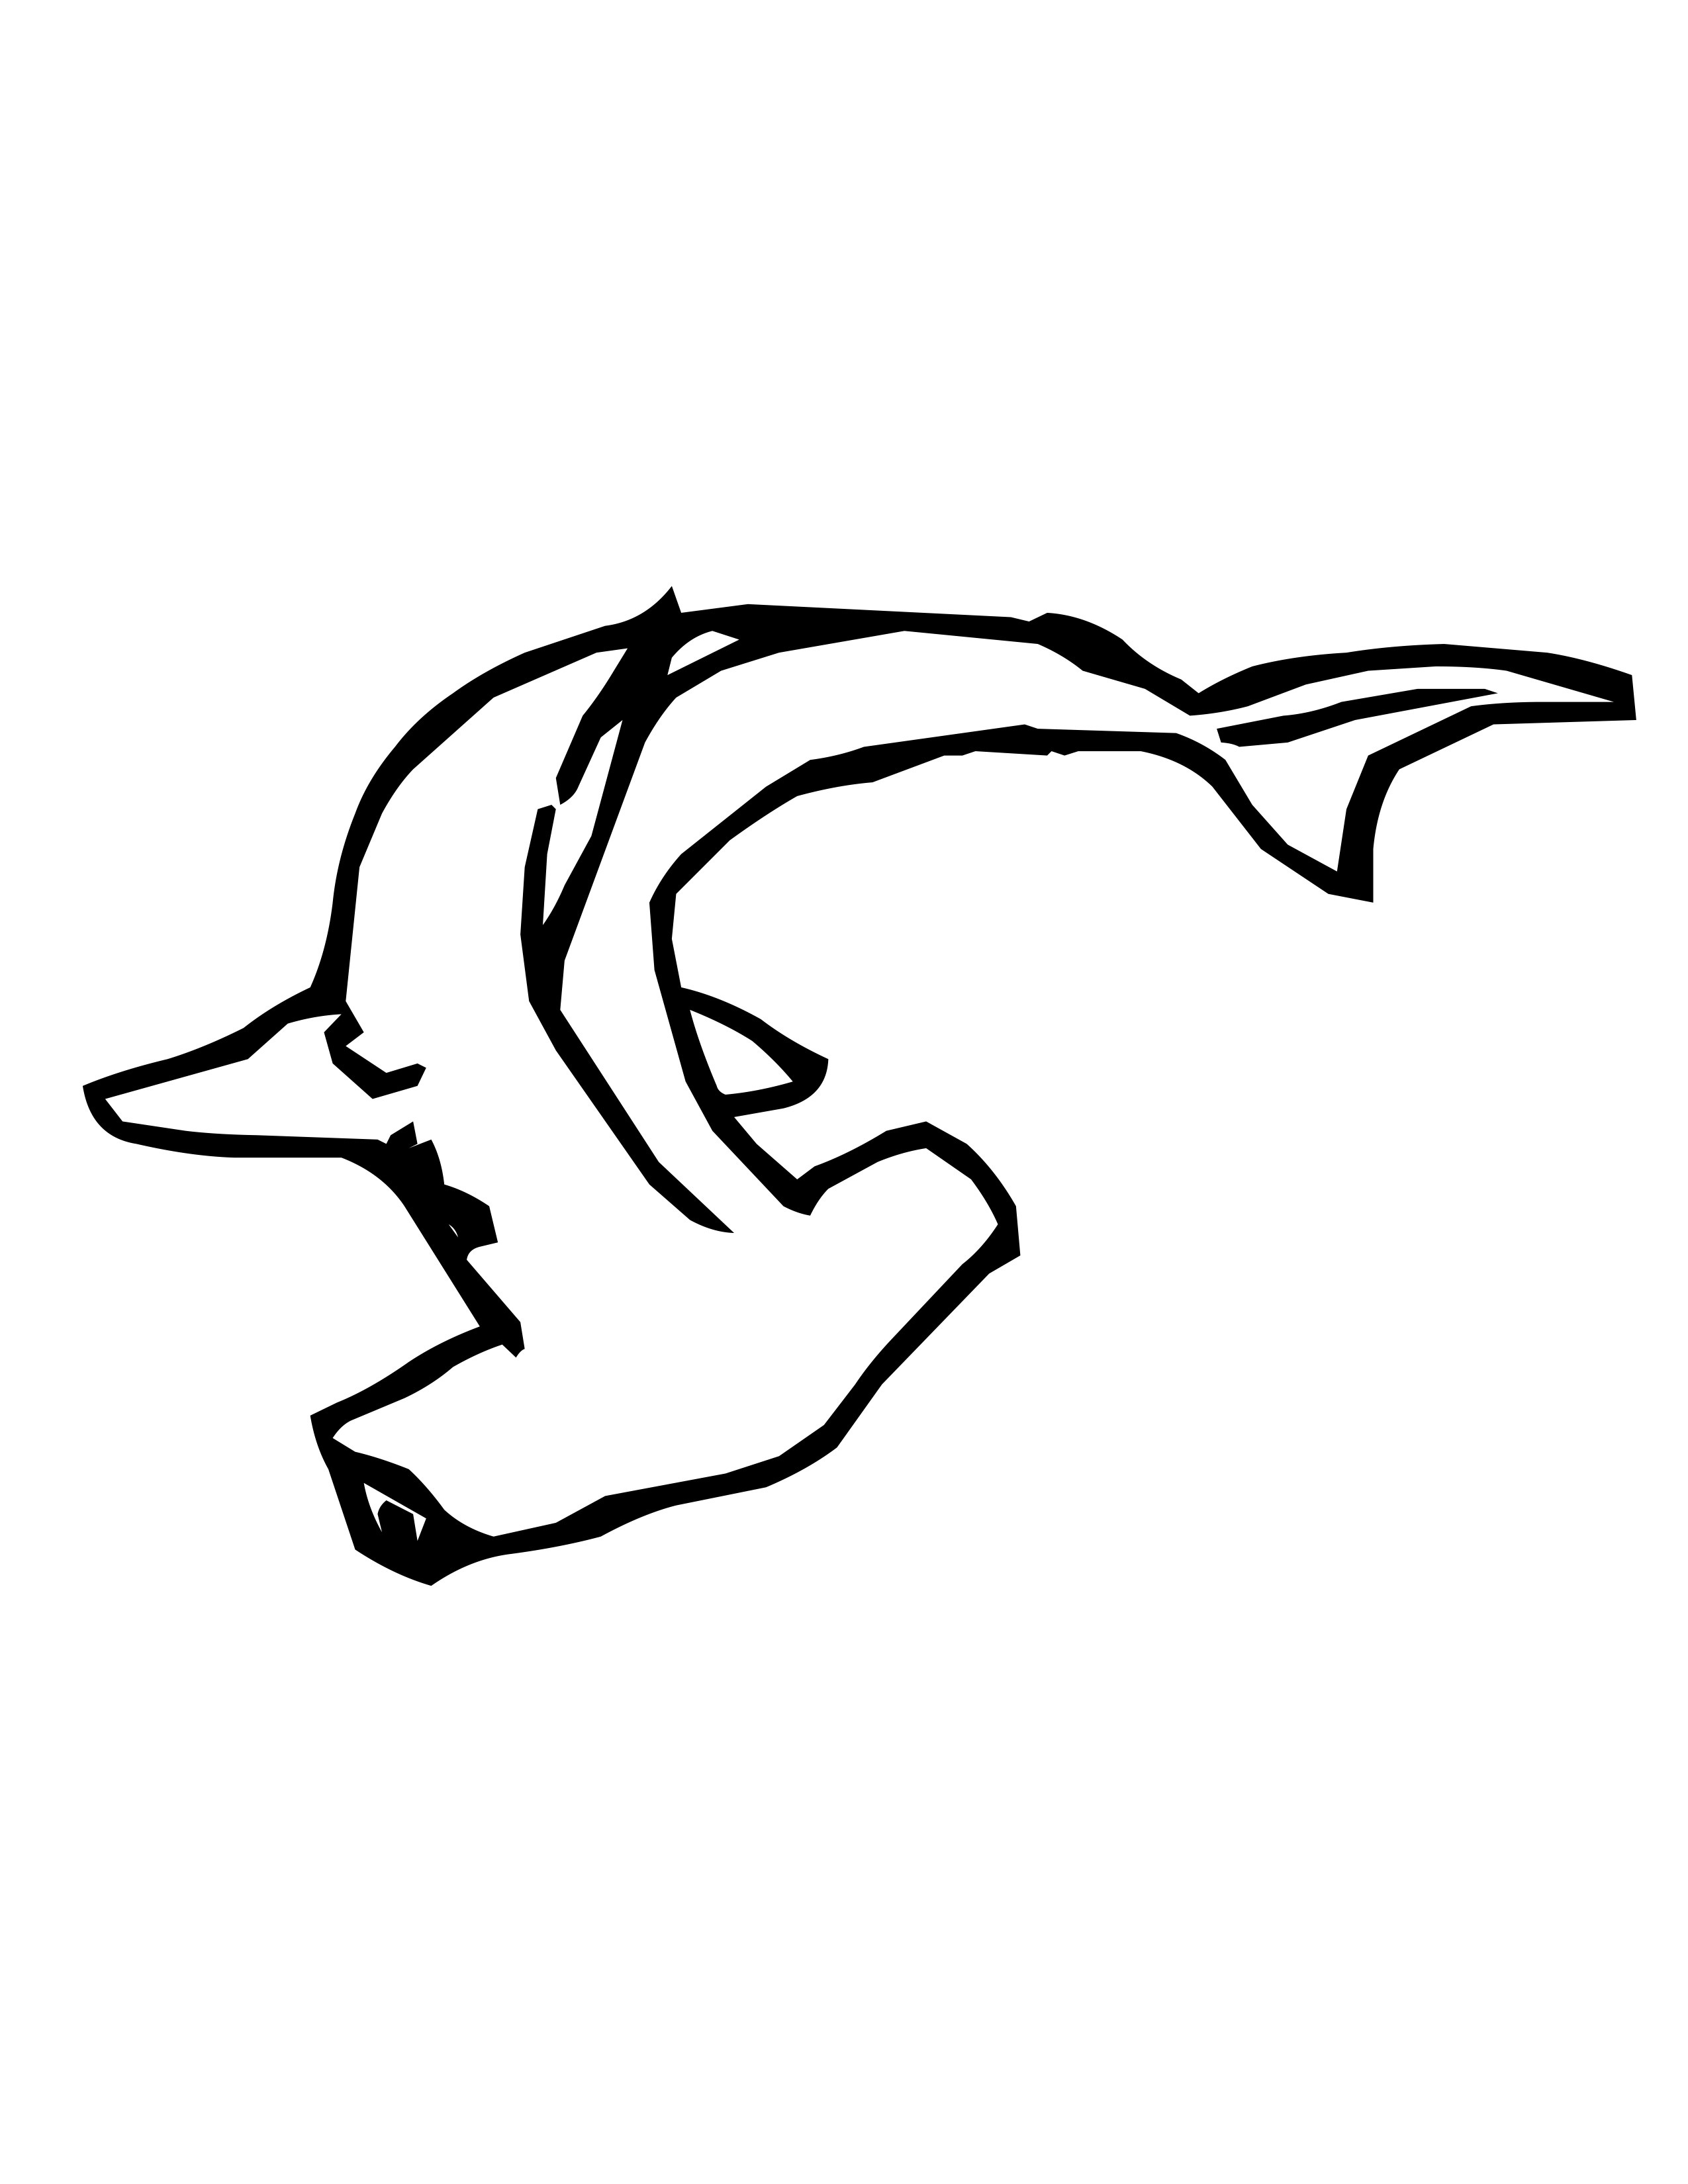 Shark Coloring Pages | Clipart Panda - Free Clipart Images